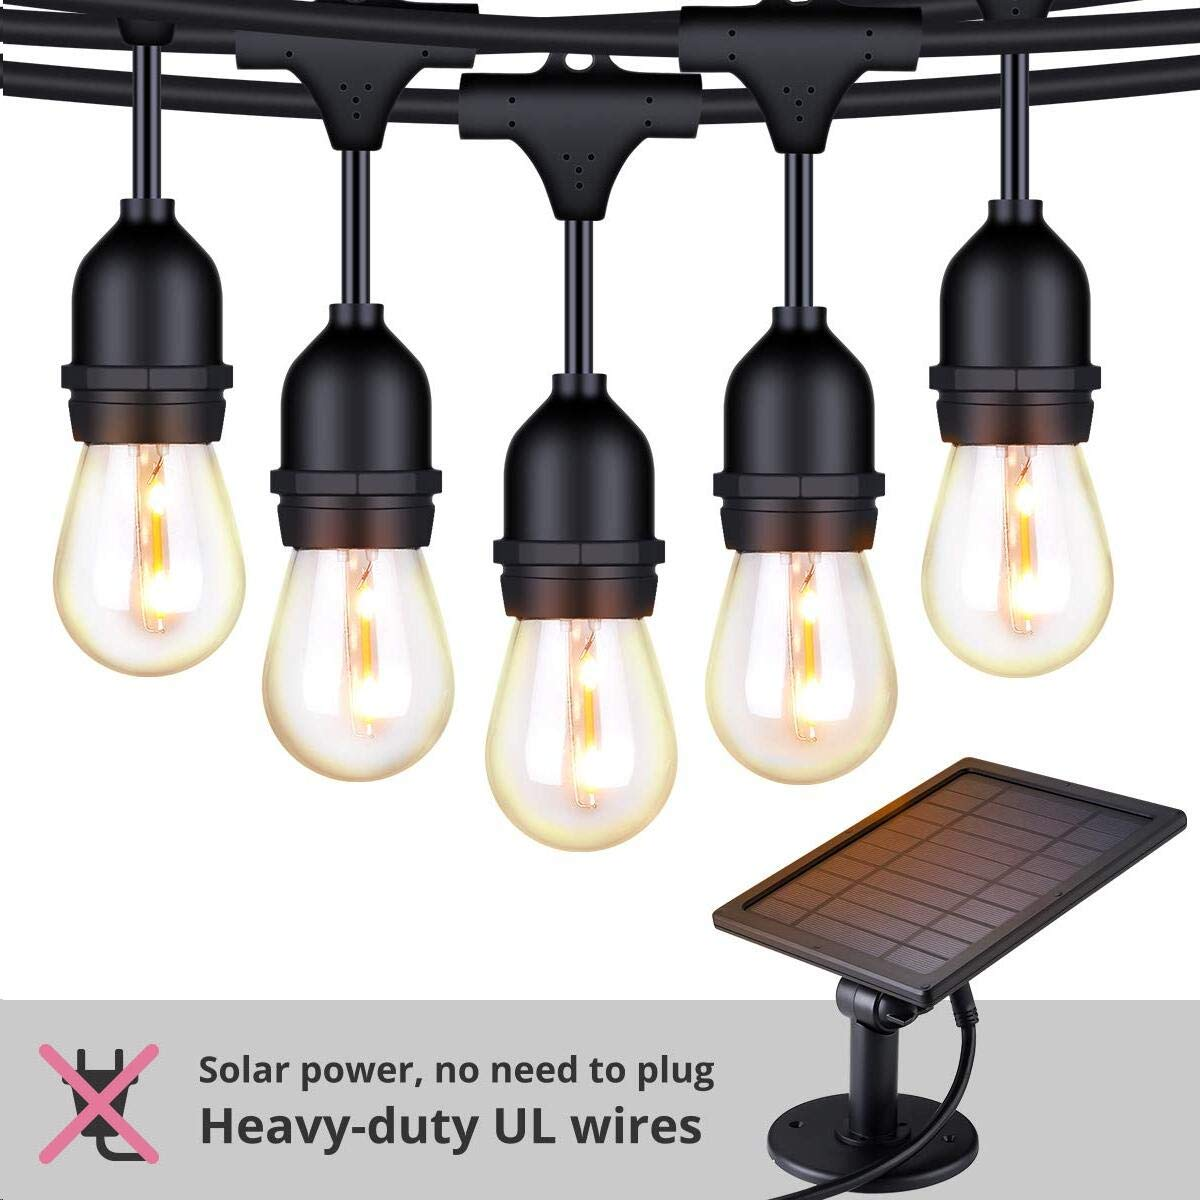 Foxlux Solar String Lights - 48FT LED Outdoor String Light - Shatterproof, Waterproof Pergola Lights - 15 Hanging Sockets, Light Sensor, S14 Edison Bulbs - Ambience for Patio, Backyard, Garden, Bistro by FOXLUX (Image #1)